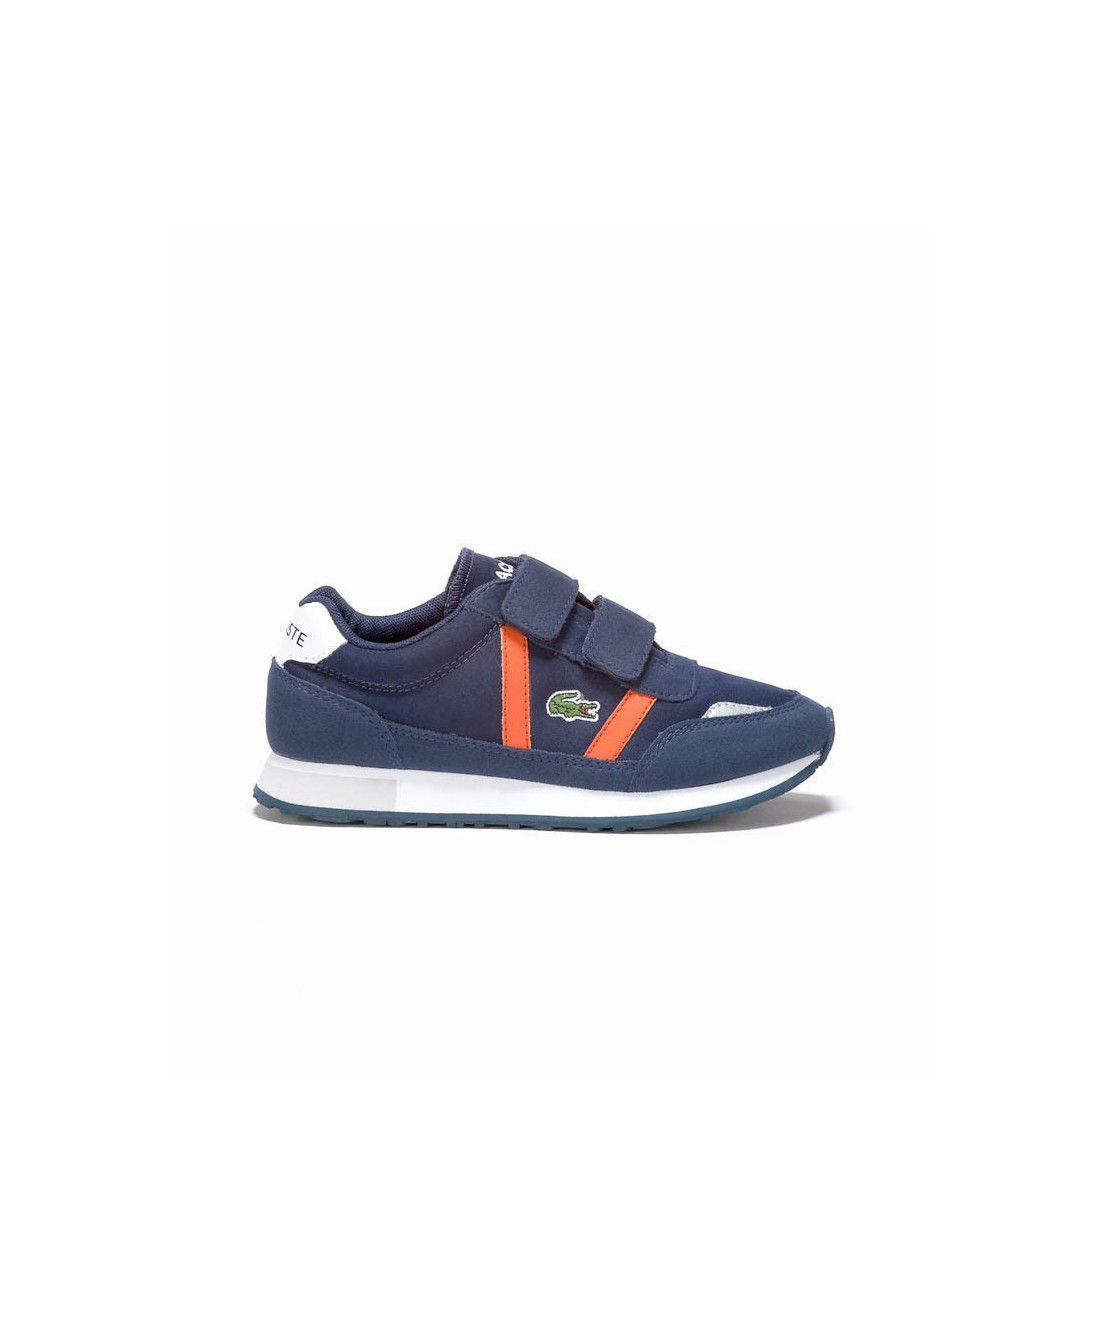 Lacoste Partner 319 7-38SUC0011325 Nvy/Org